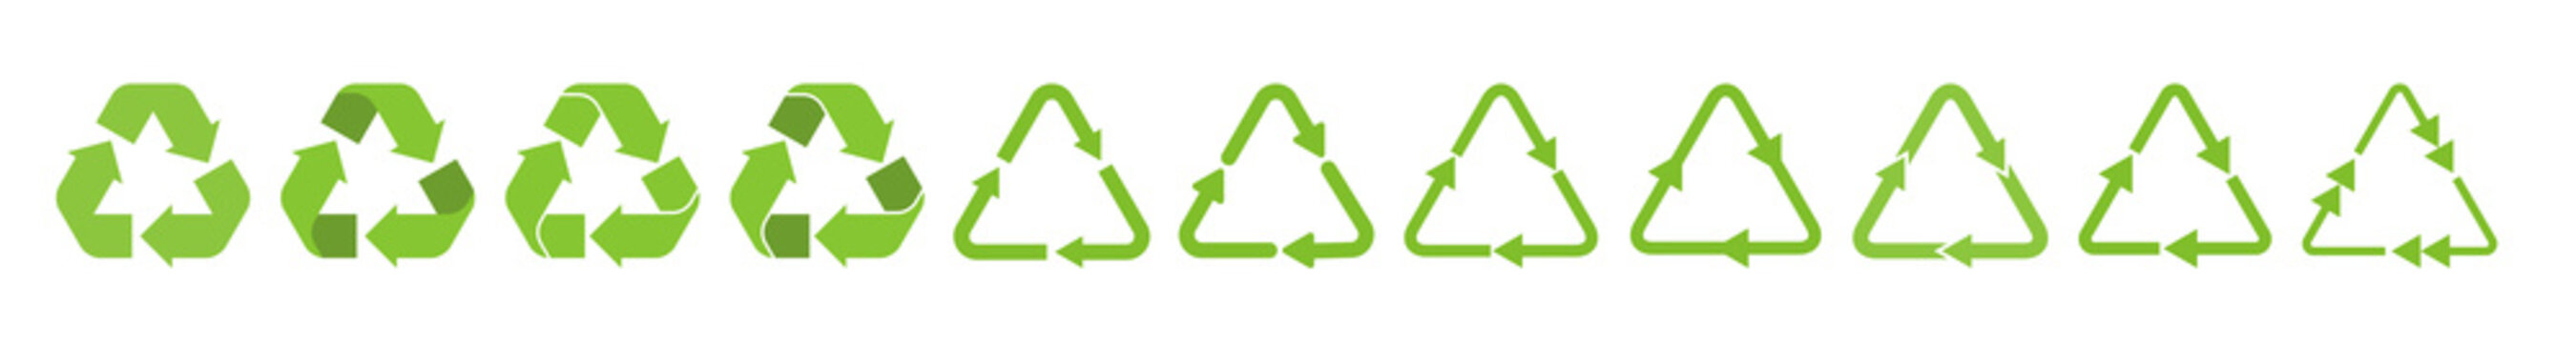 Recycle triangle arrow symbols set vector illustration. Green solid pictograms of reuse or recycling process, arrow cycle in triangle shape isolated on white background for enviromental infographic